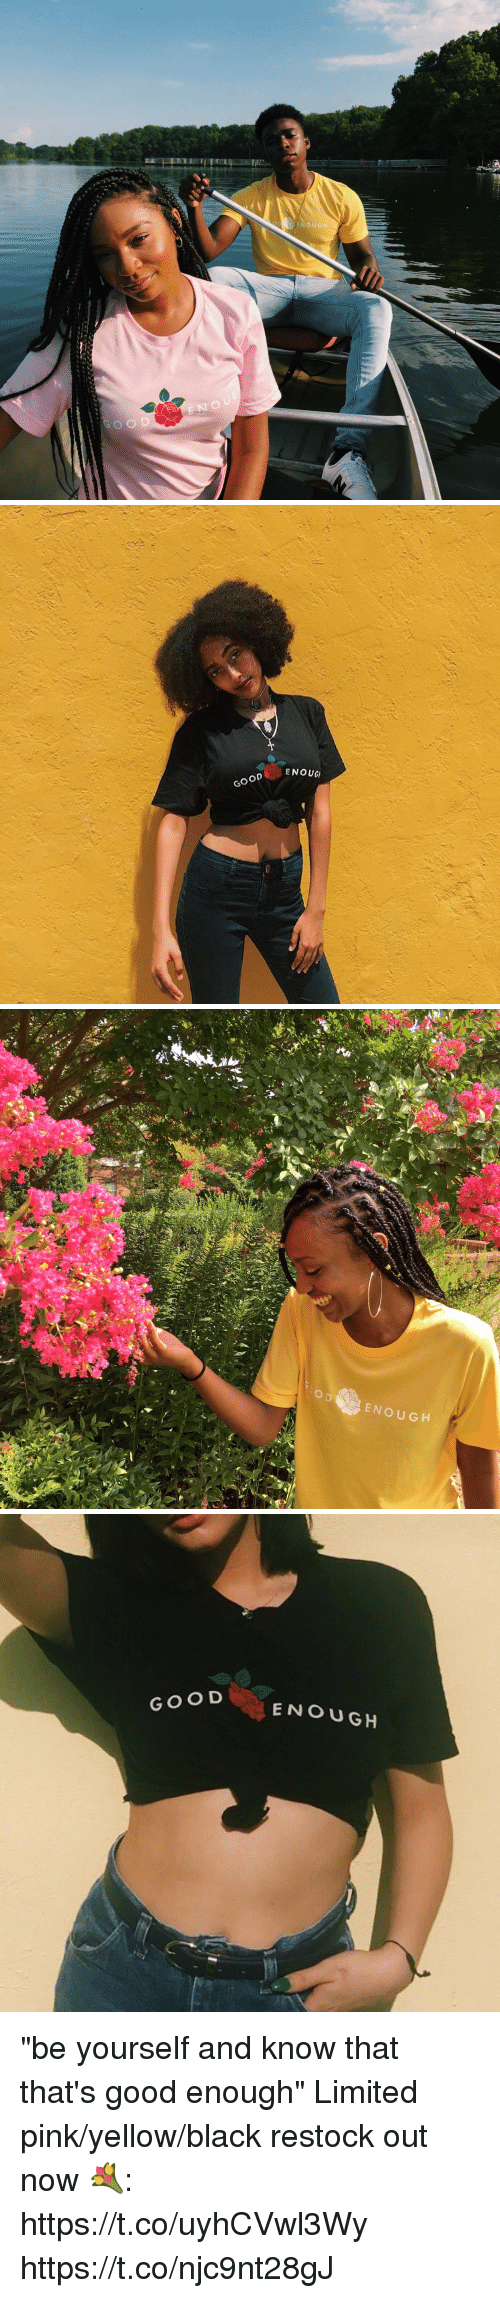 "Funny, Black, and Good: DENOUG   ENOUG  GOOD E   ODENOUGH   GOOD  ENOUGH ""be yourself and know that that's good enough""  Limited pink/yellow/black restock out now 💐: https://t.co/uyhCVwl3Wy https://t.co/njc9nt28gJ"